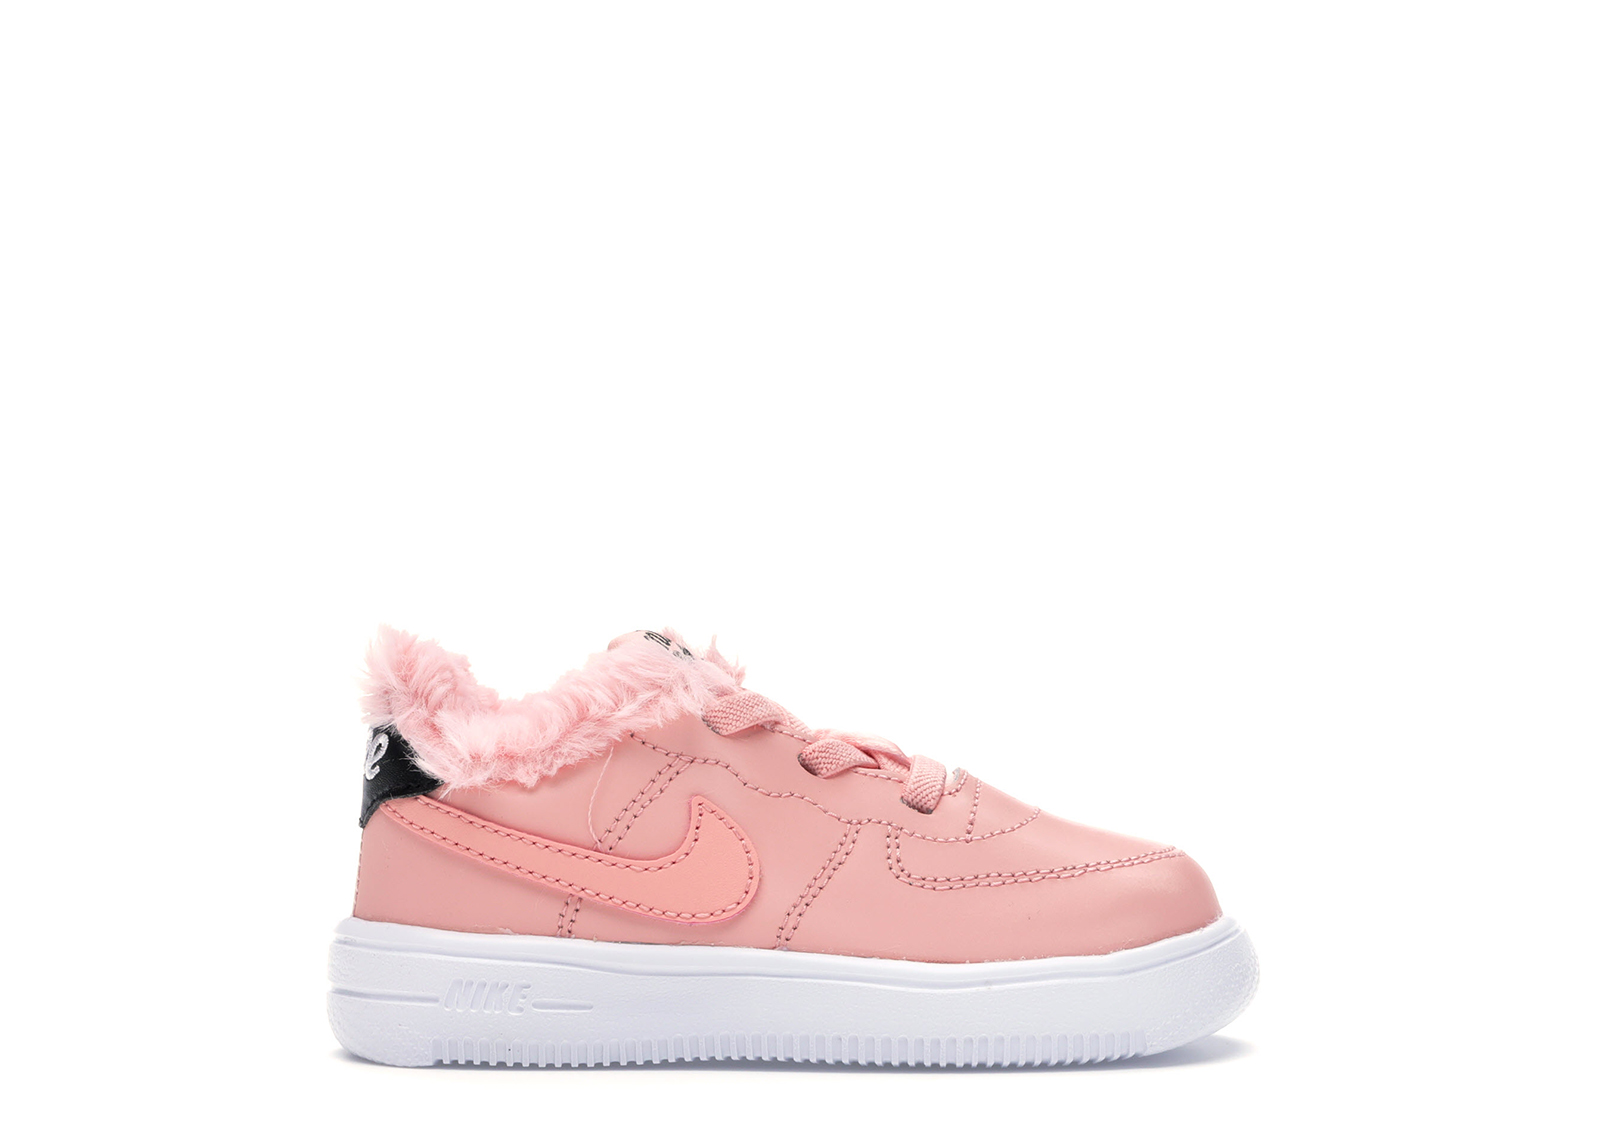 Nike Air Force 1 Low Valentines Day 2019 Bleached Coral (TD)